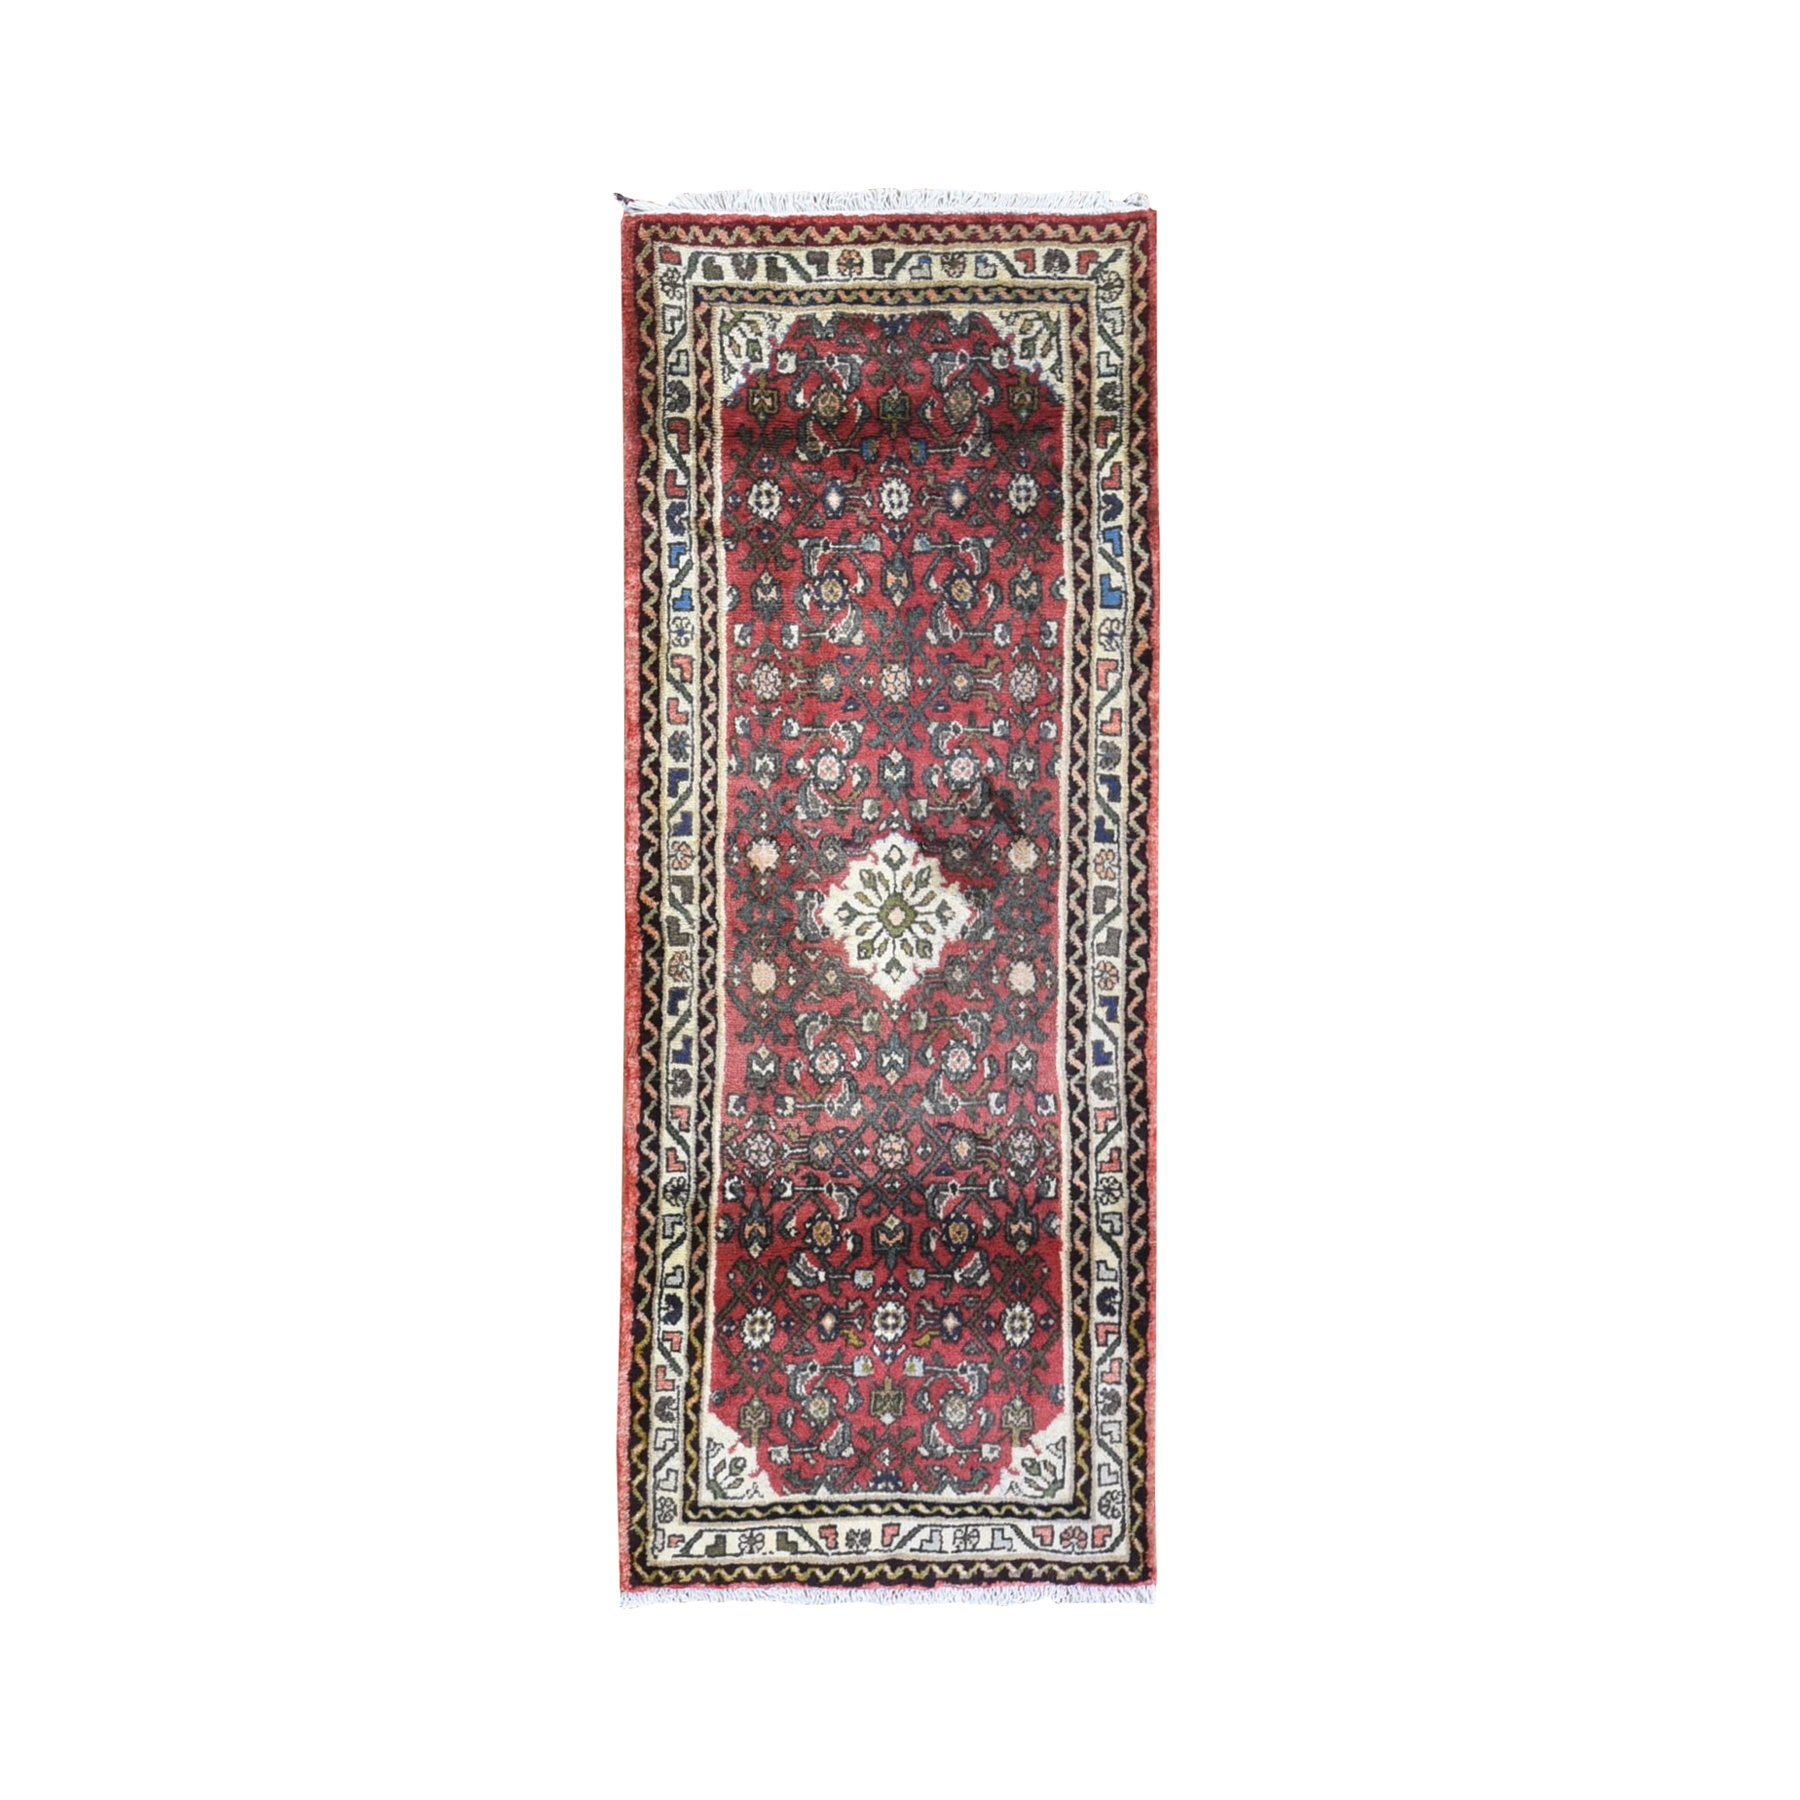 "2'8""x6'9"" Red Vintage Persian Hamadan Fish Design Short Runner Hand Knotted Organic Wool Oriental Rug"